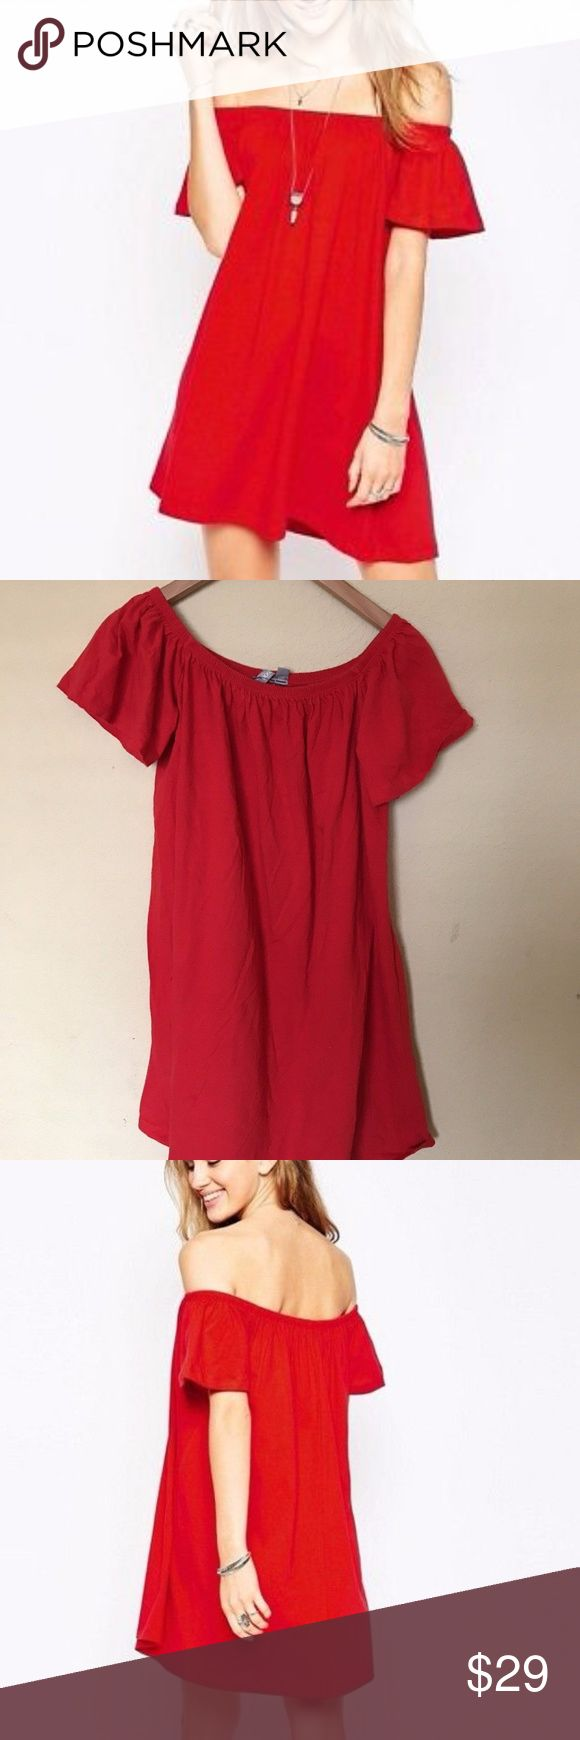 ASOS CURVE RED OFF SHOULDER DRESS Just the cutest red dress! Perfect off the shoulder dress. Love the idea of pairing this with a really cute pair of boots! 100% cotton. Please see pictures for measurements. Stock H ASOS Curve Dresses